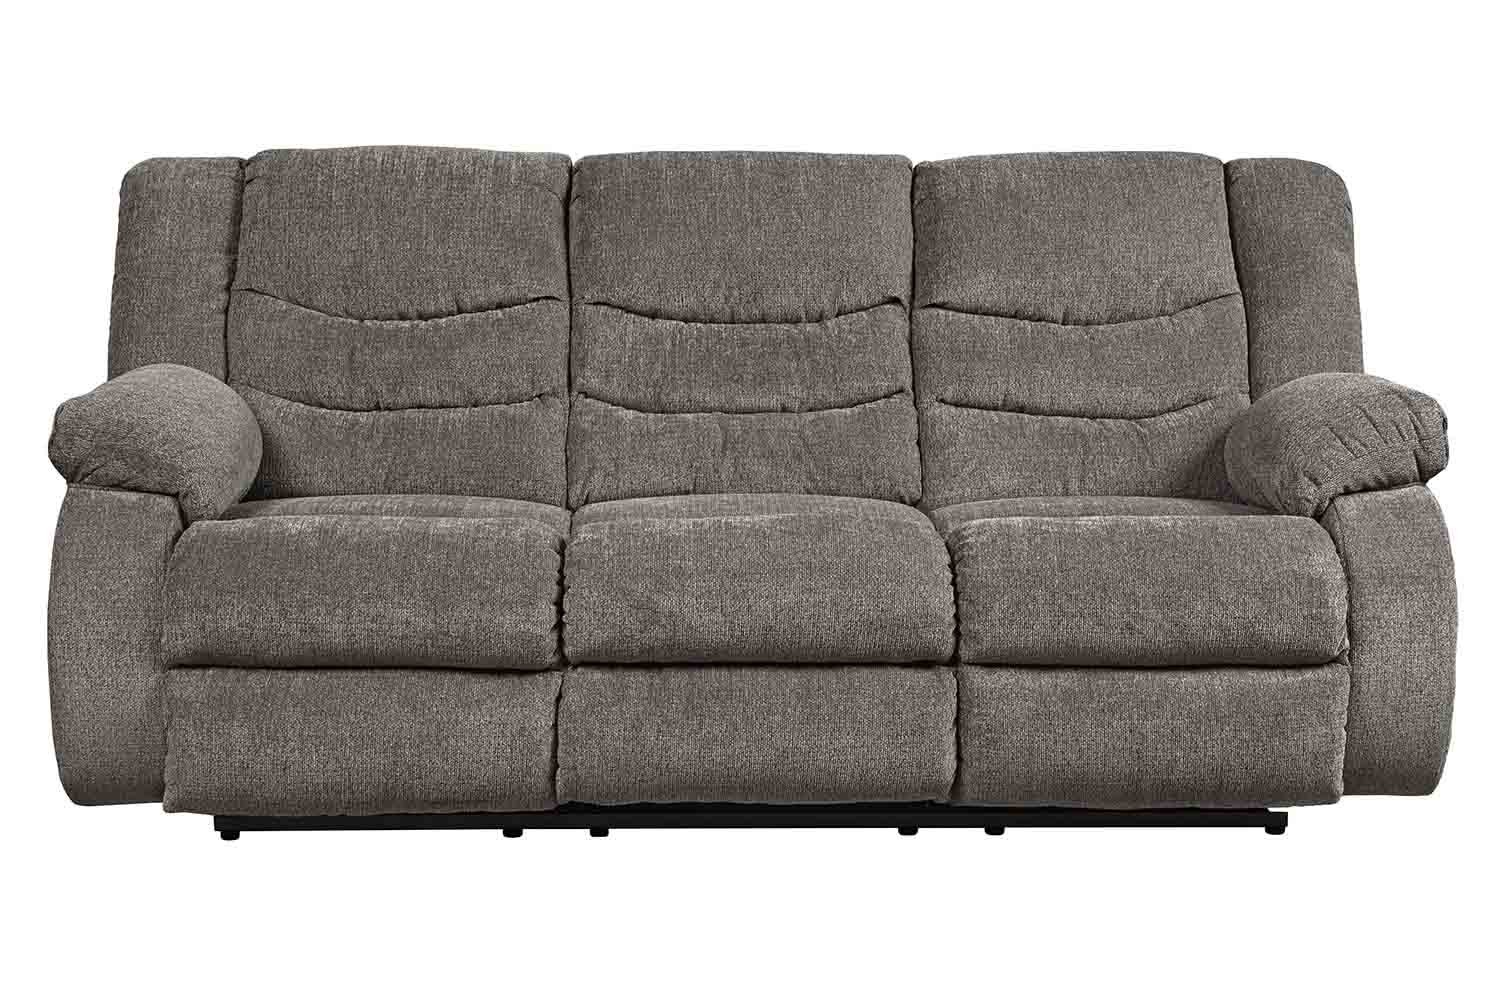 Sofa Bed Couch Sofas Couches Mor Furniture For Less